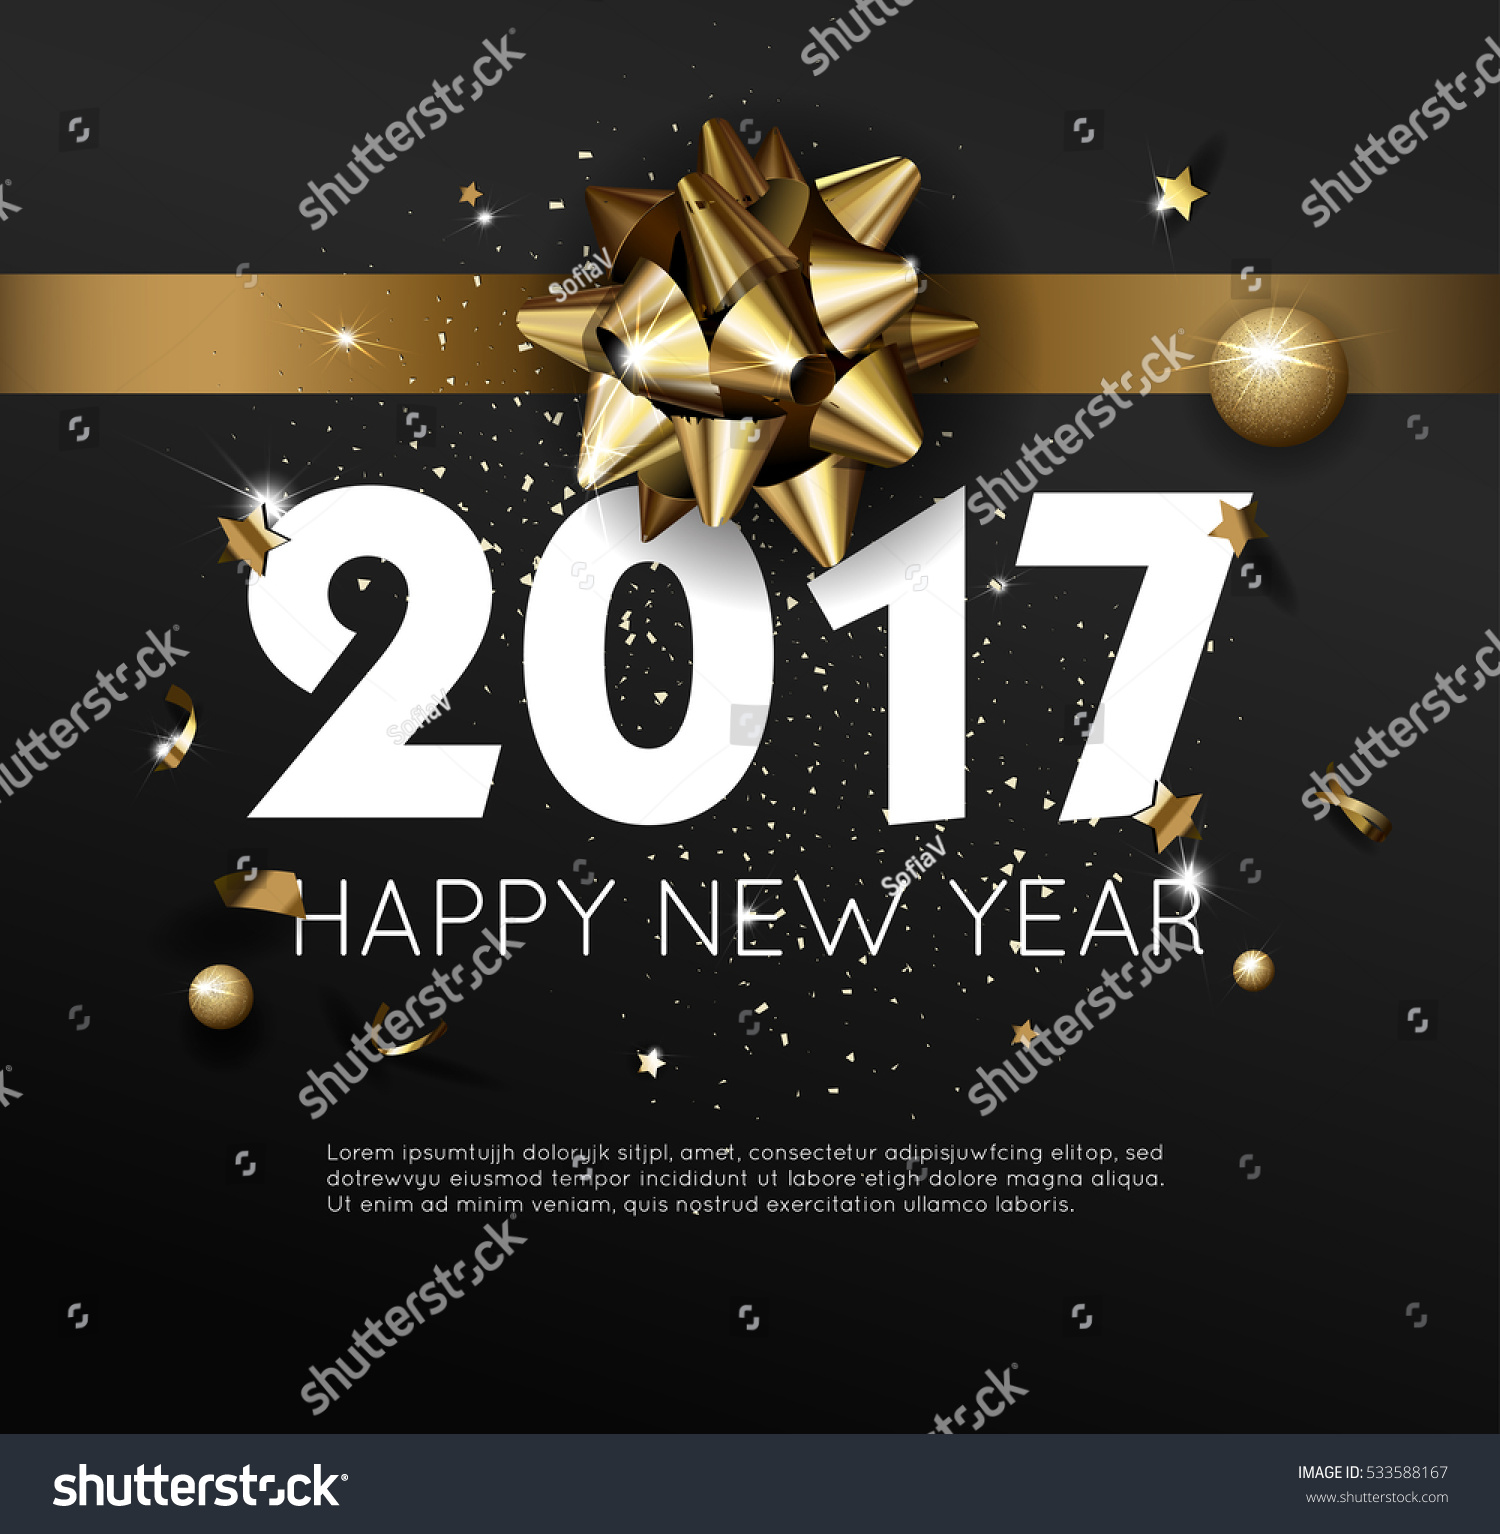 happy new year 2017 greeting card or poster template flyer or invitation design beautiful